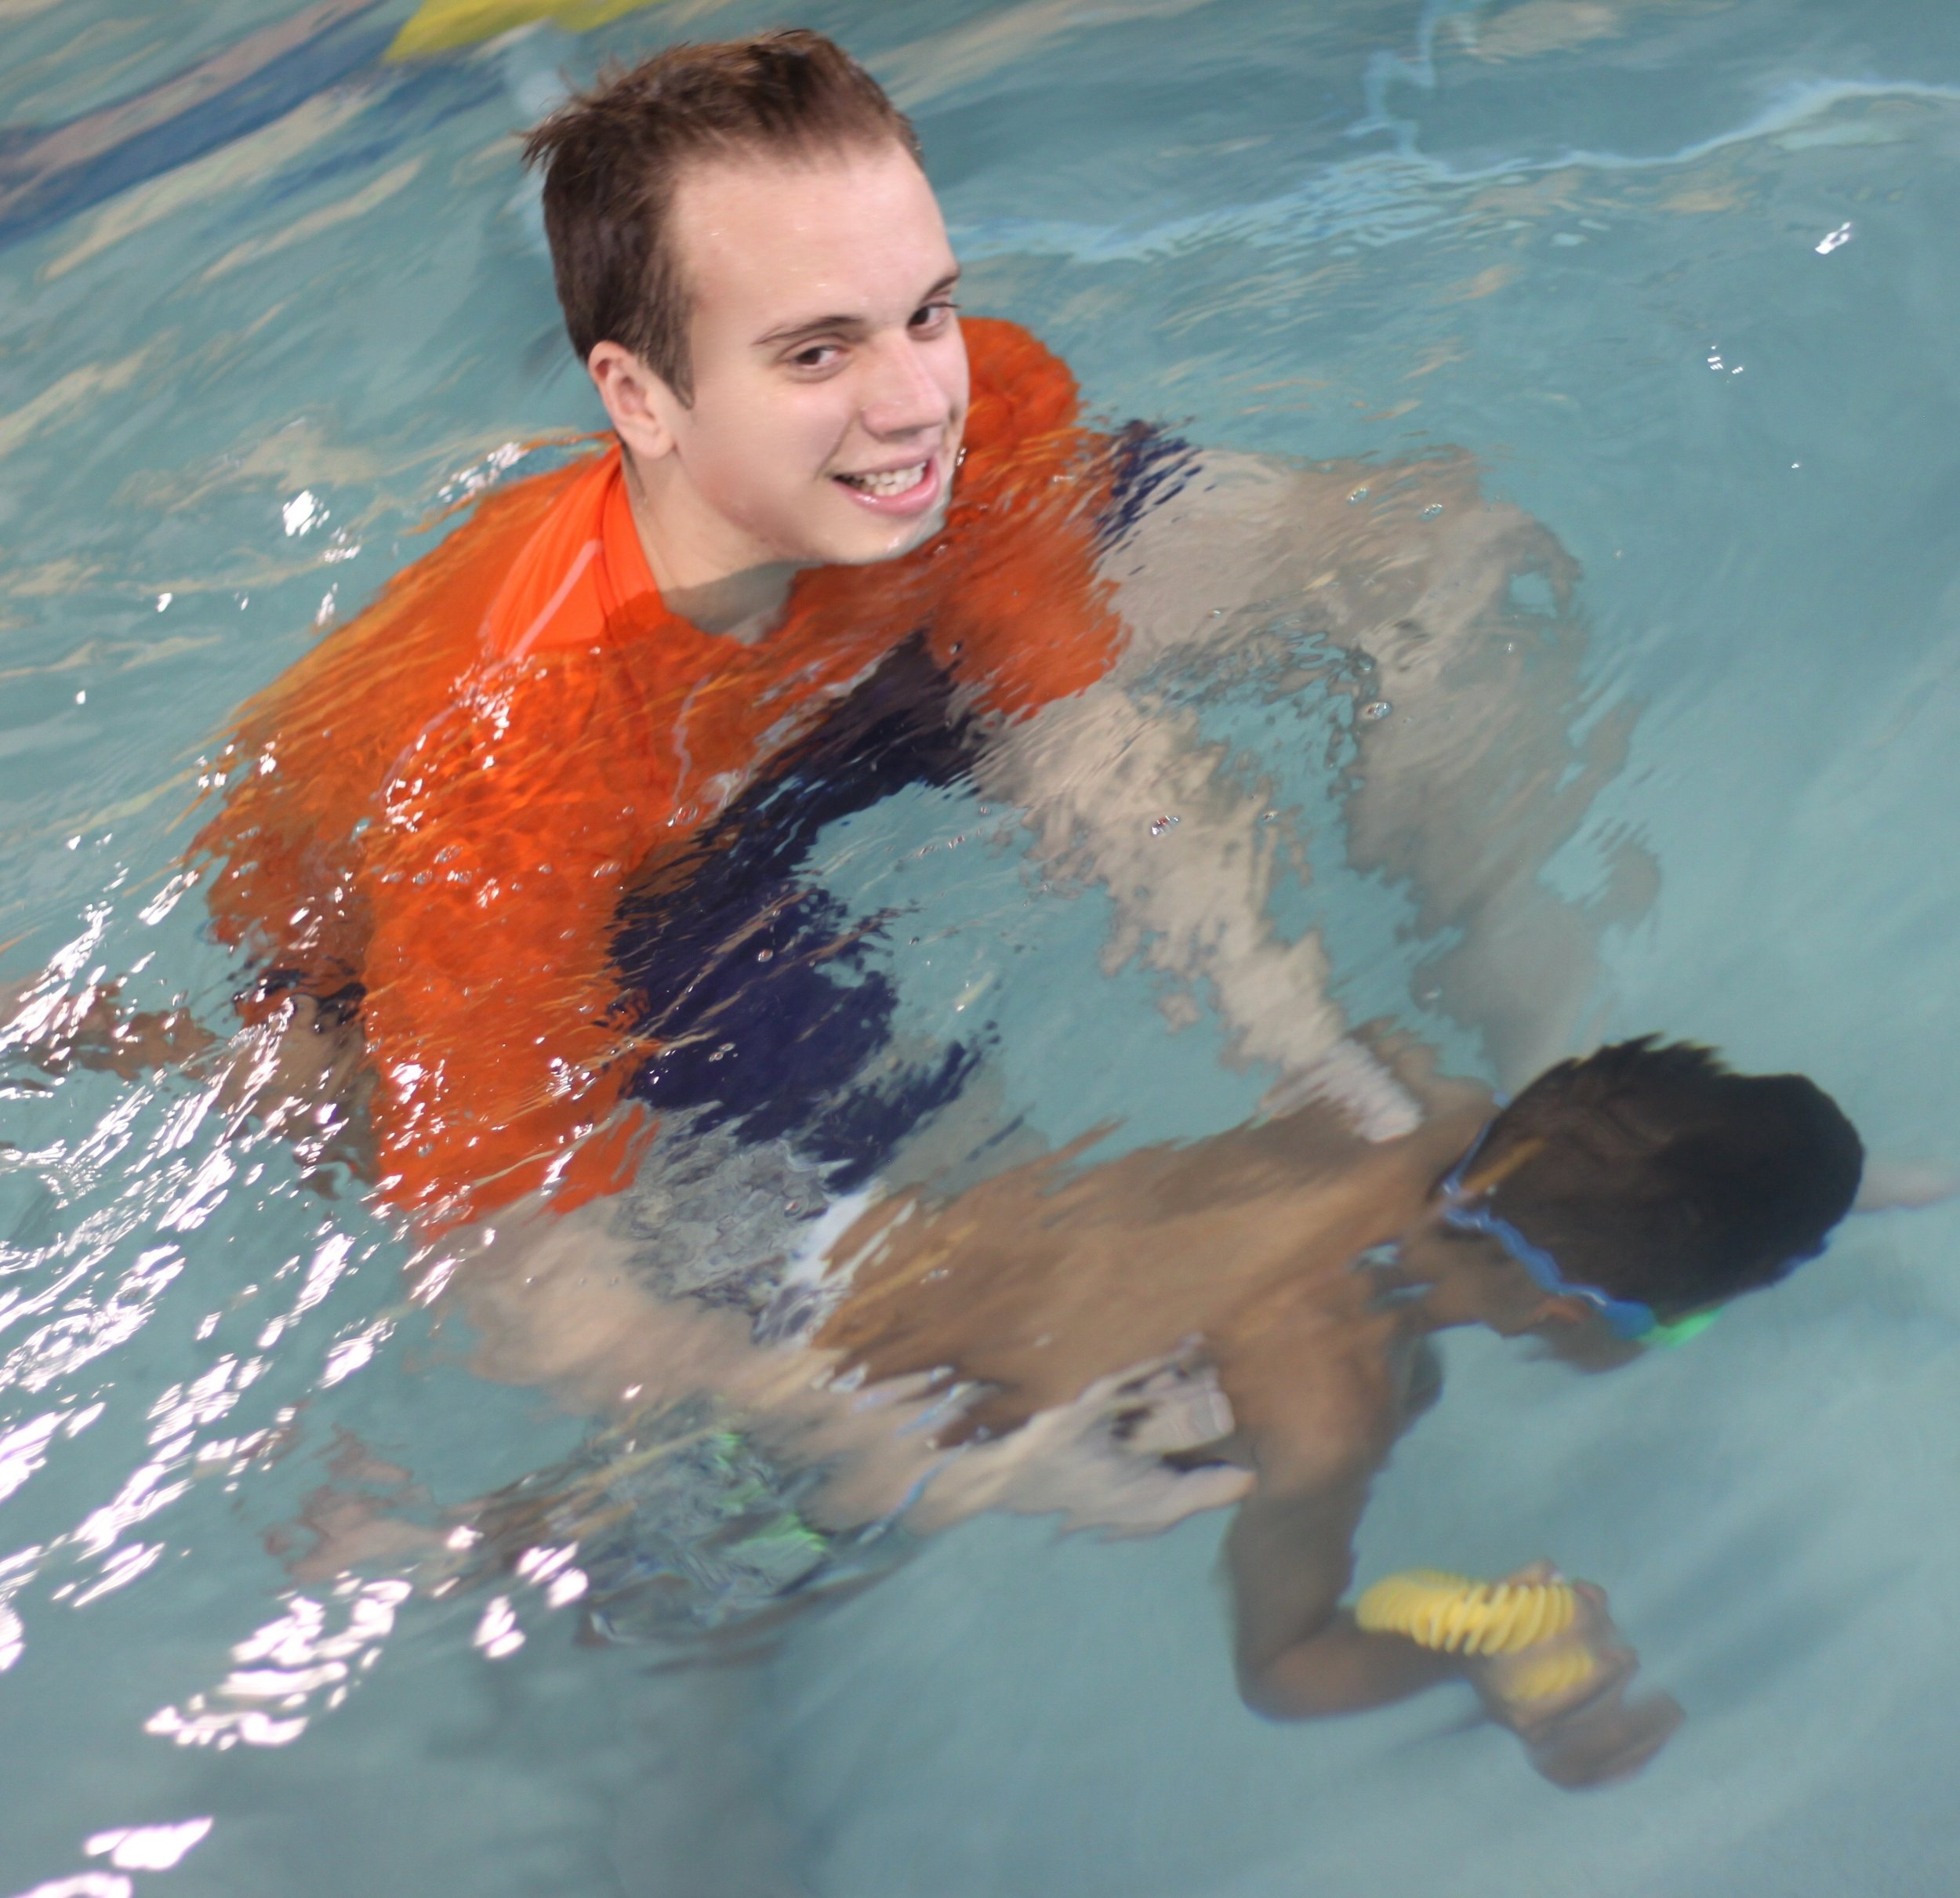 Big brother dives underwater for a ring in Junior 3